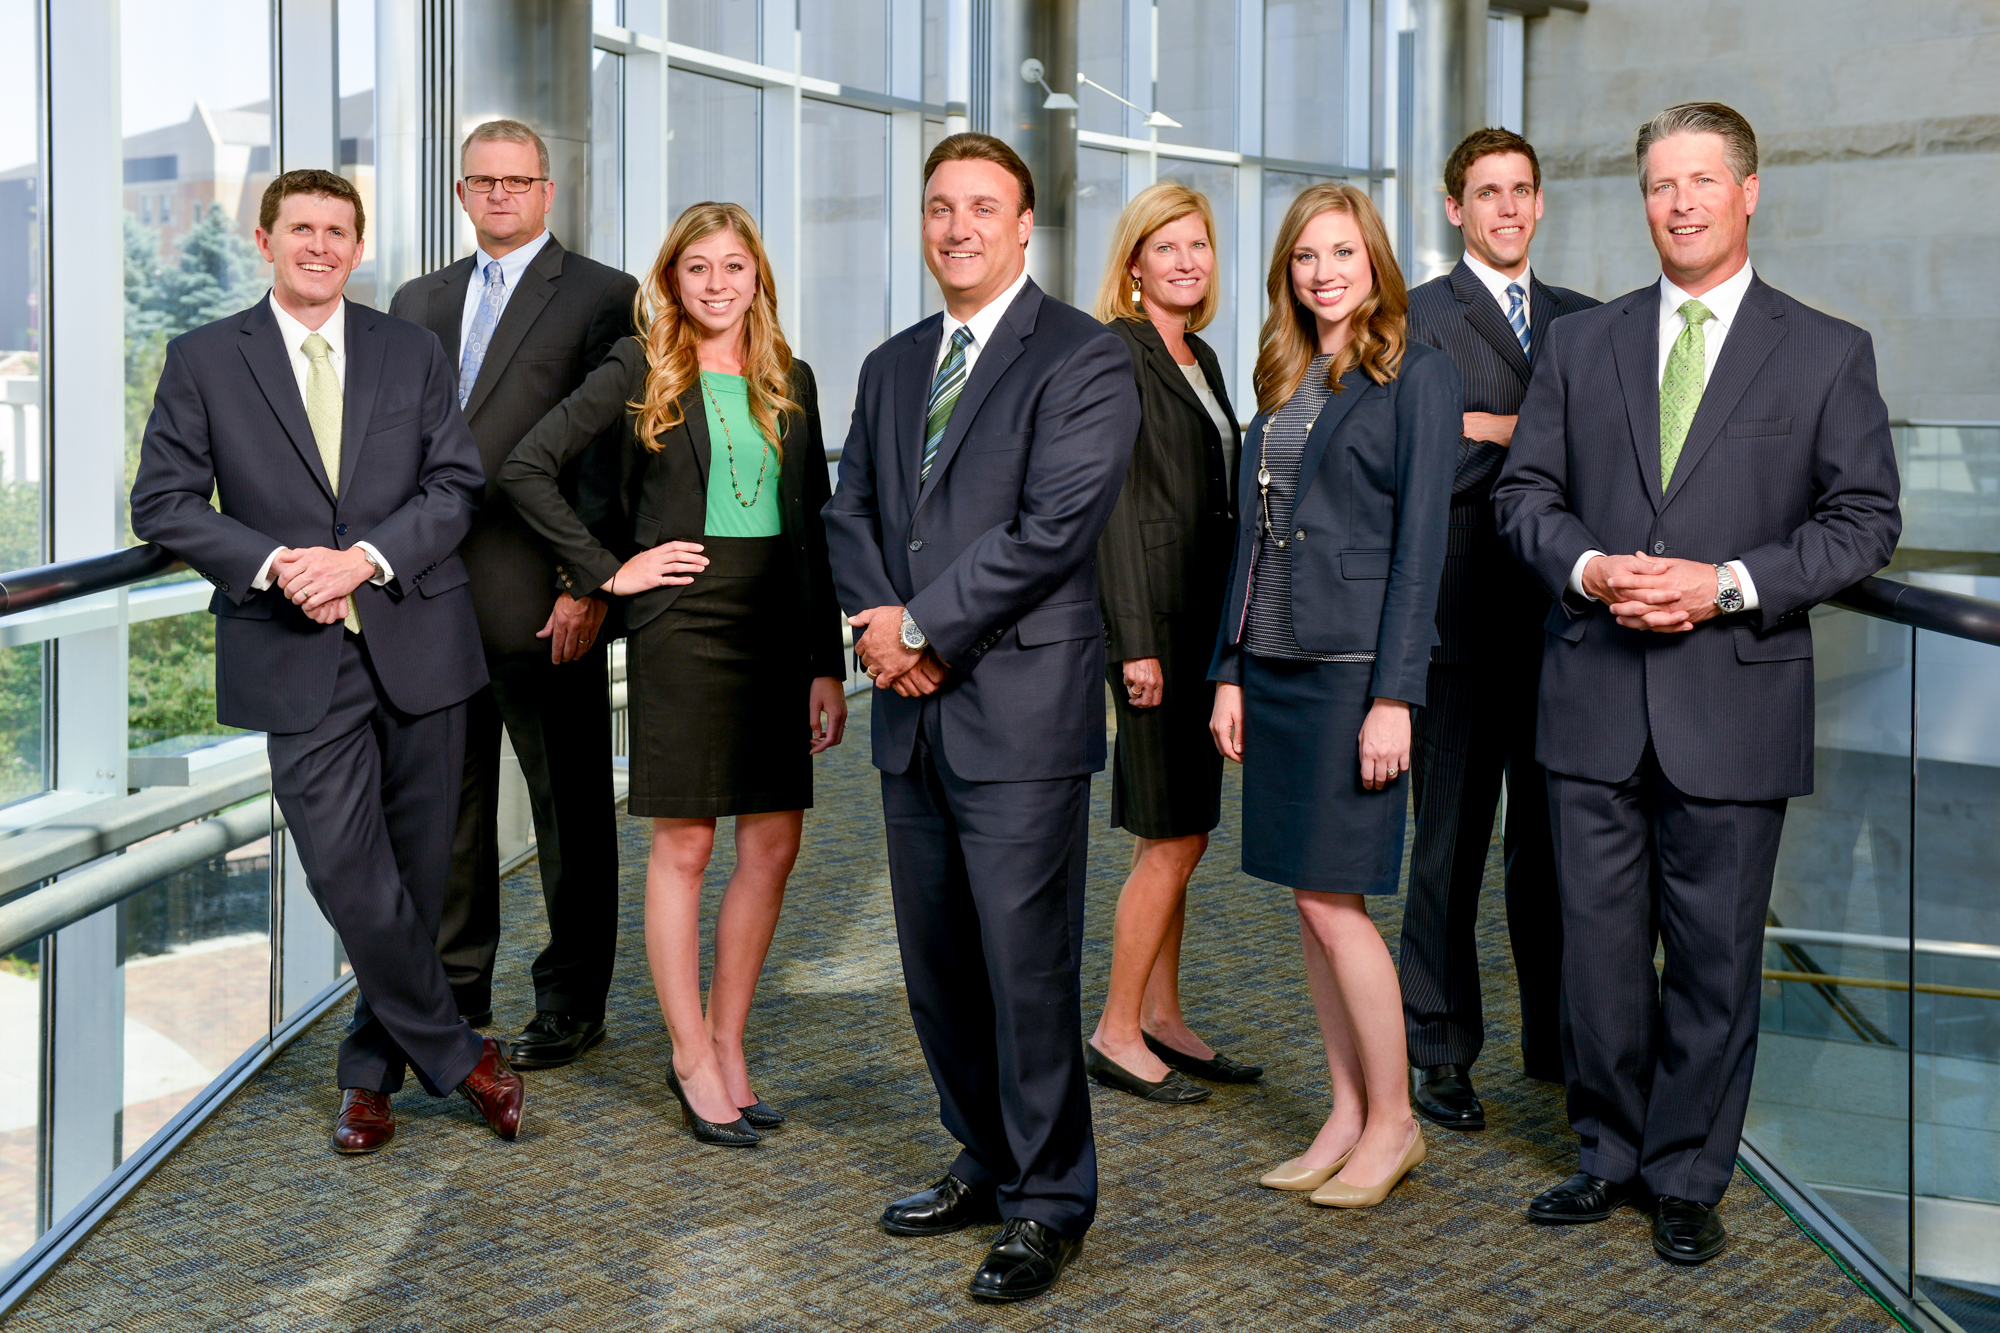 Corporate Team Photo